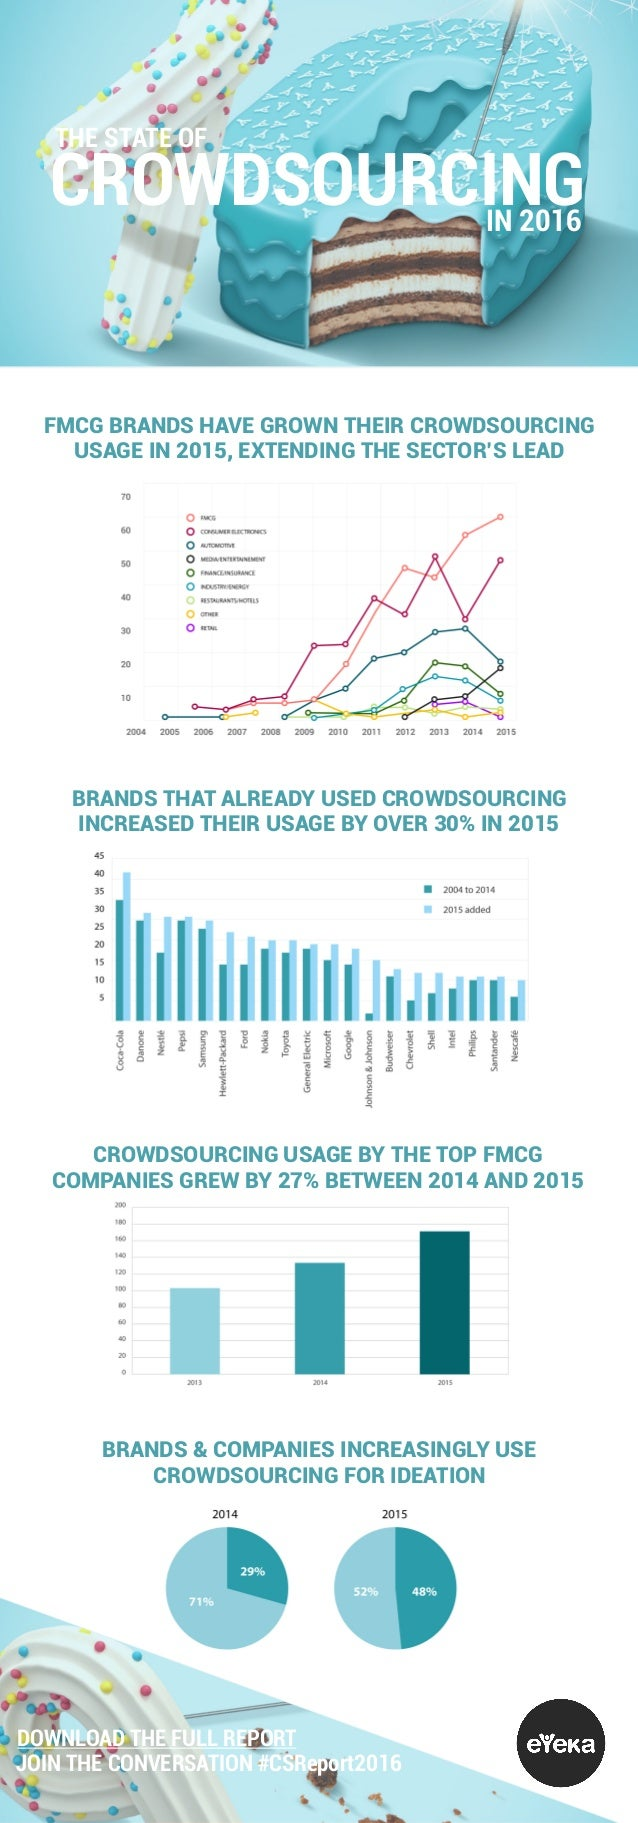 THE STATE OF CROWDSOURCINGIN 2016 FMCG BRANDS HAVE GROWN THEIR CROWDSOURCING USAGE IN 2015, EXTENDING THE SECTOR'S LEAD CR...